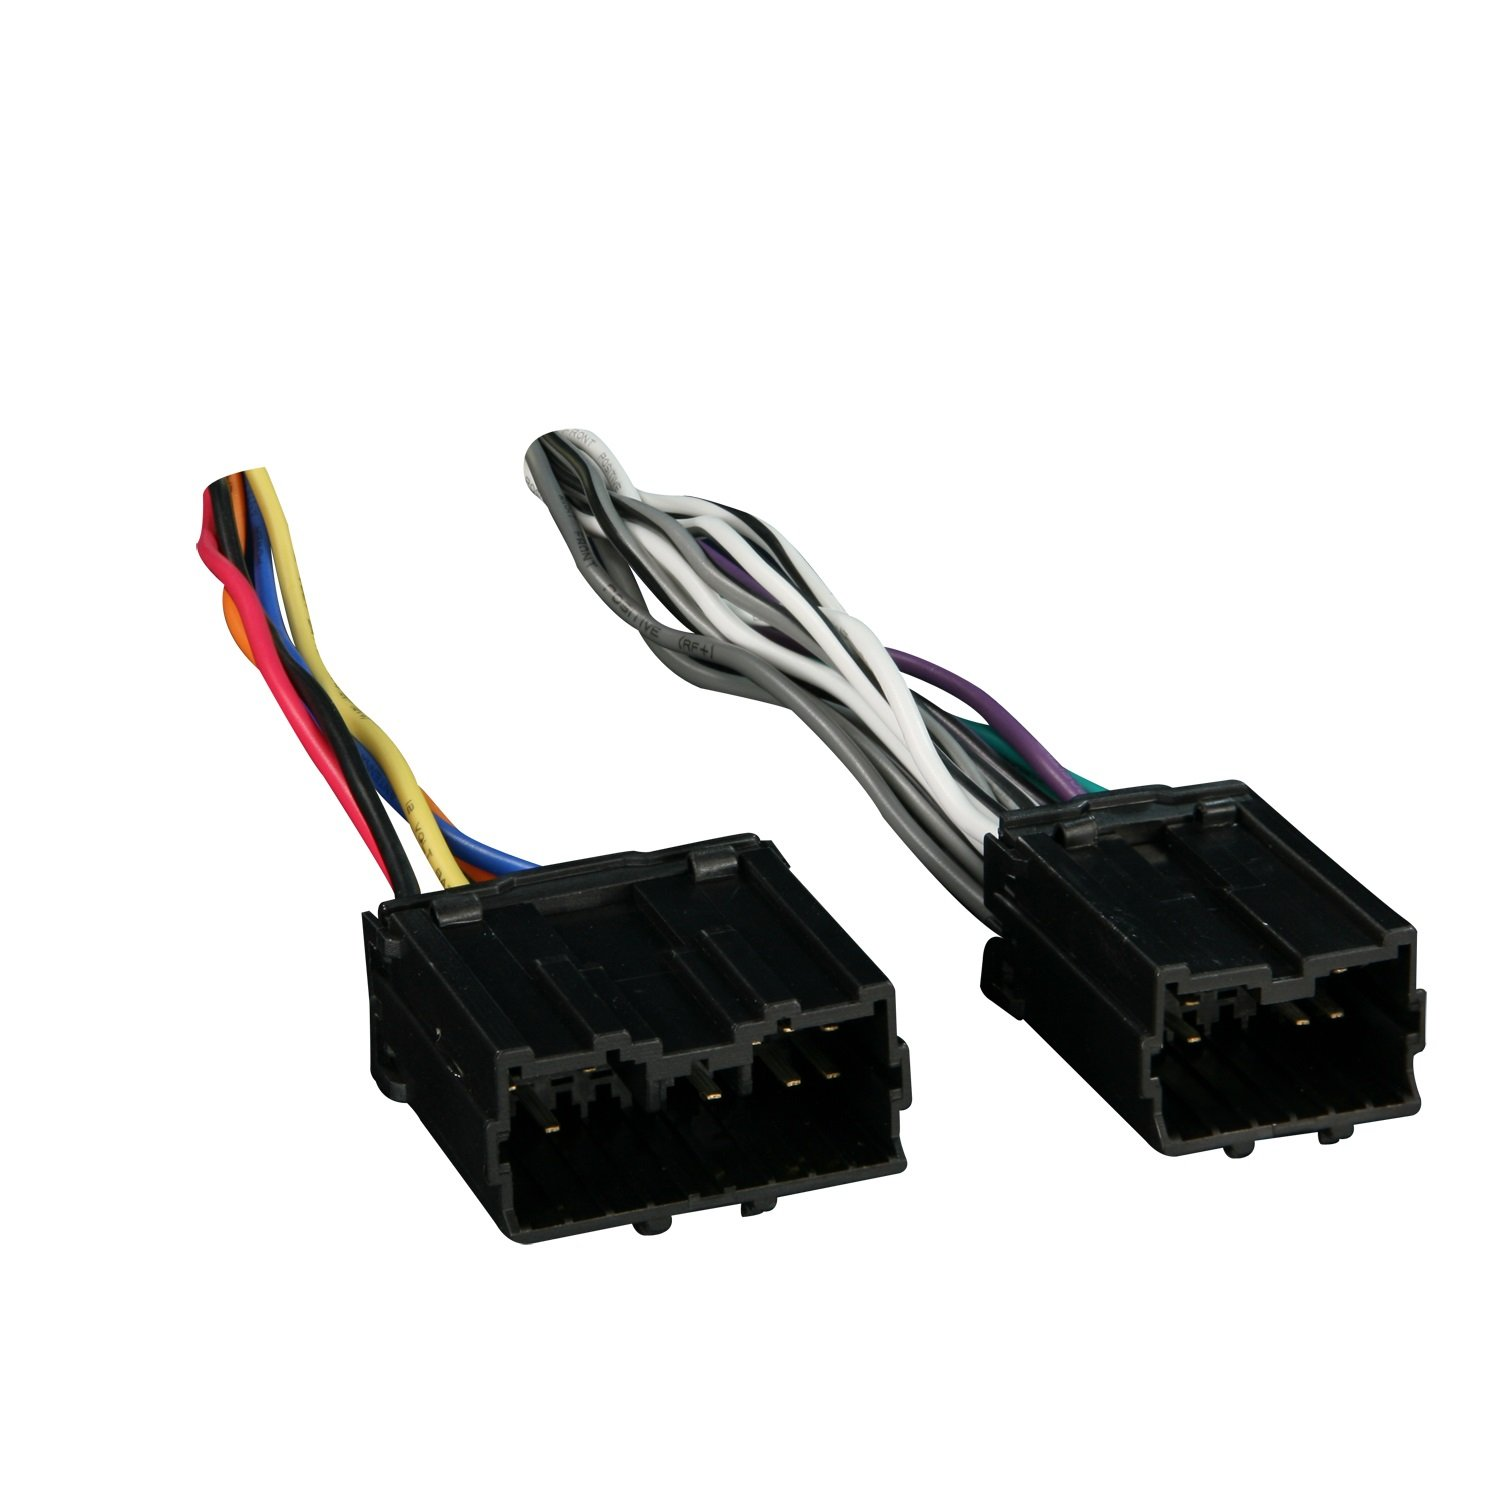 61HsPxWC16L._SL1500_ amazon com metra 70 9220 radio wiring harness for volvo 93 08 metra 70-9221 receiver wiring harness at gsmx.co